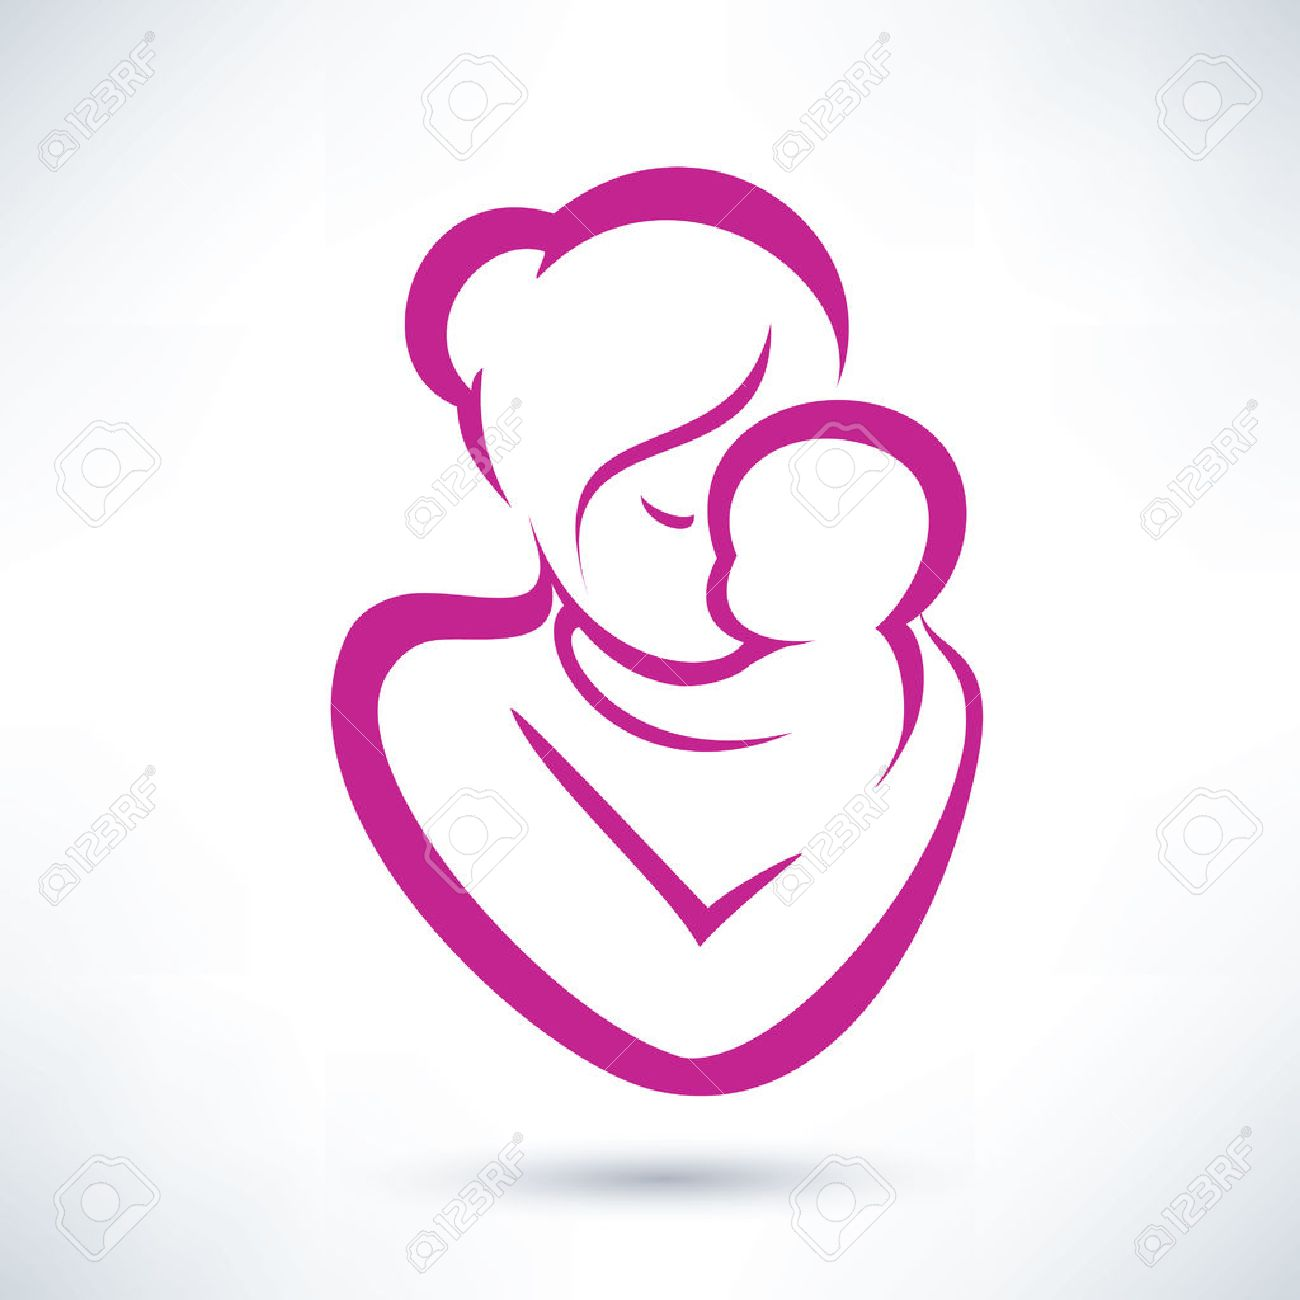 http://previews.123rf.com/images/baldyrgan/baldyrgan1311/baldyrgan131100026/23867293-mom-and-baby-vector-icon-Stock-Vector-mother-baby-child.jpg